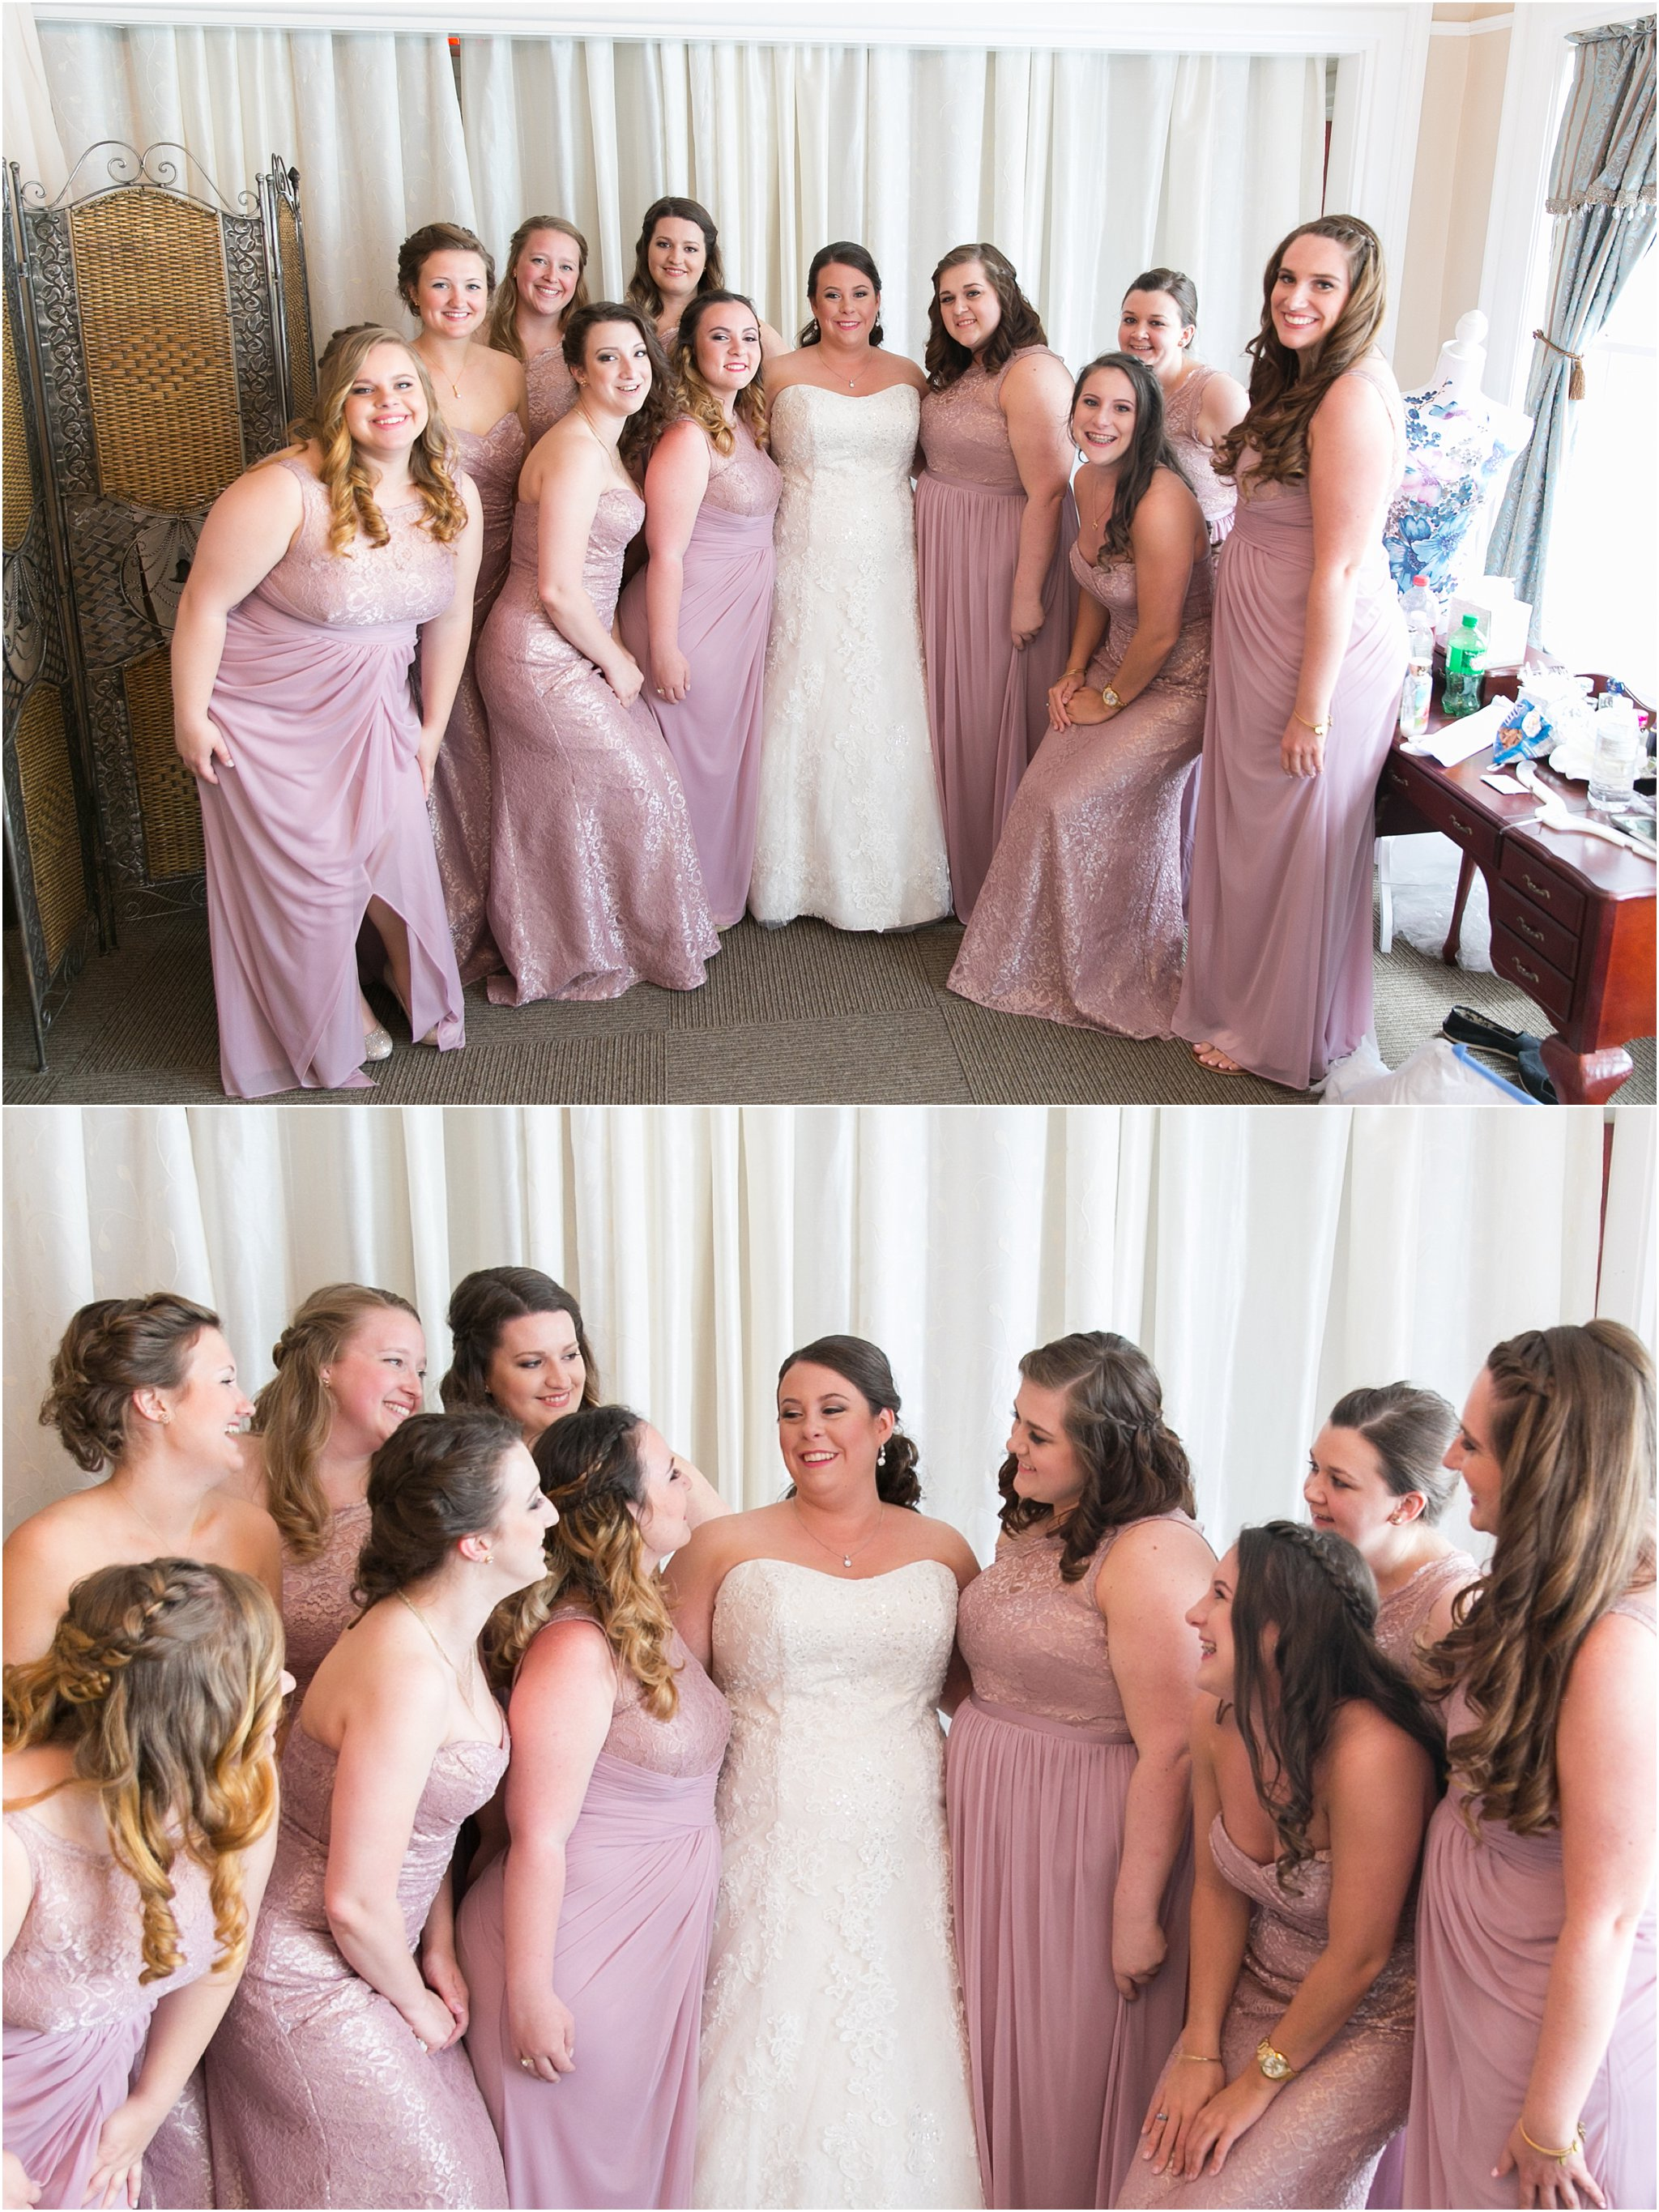 jessica_ryan_photography_wedding_suffolk_obici_house_wedding_0394